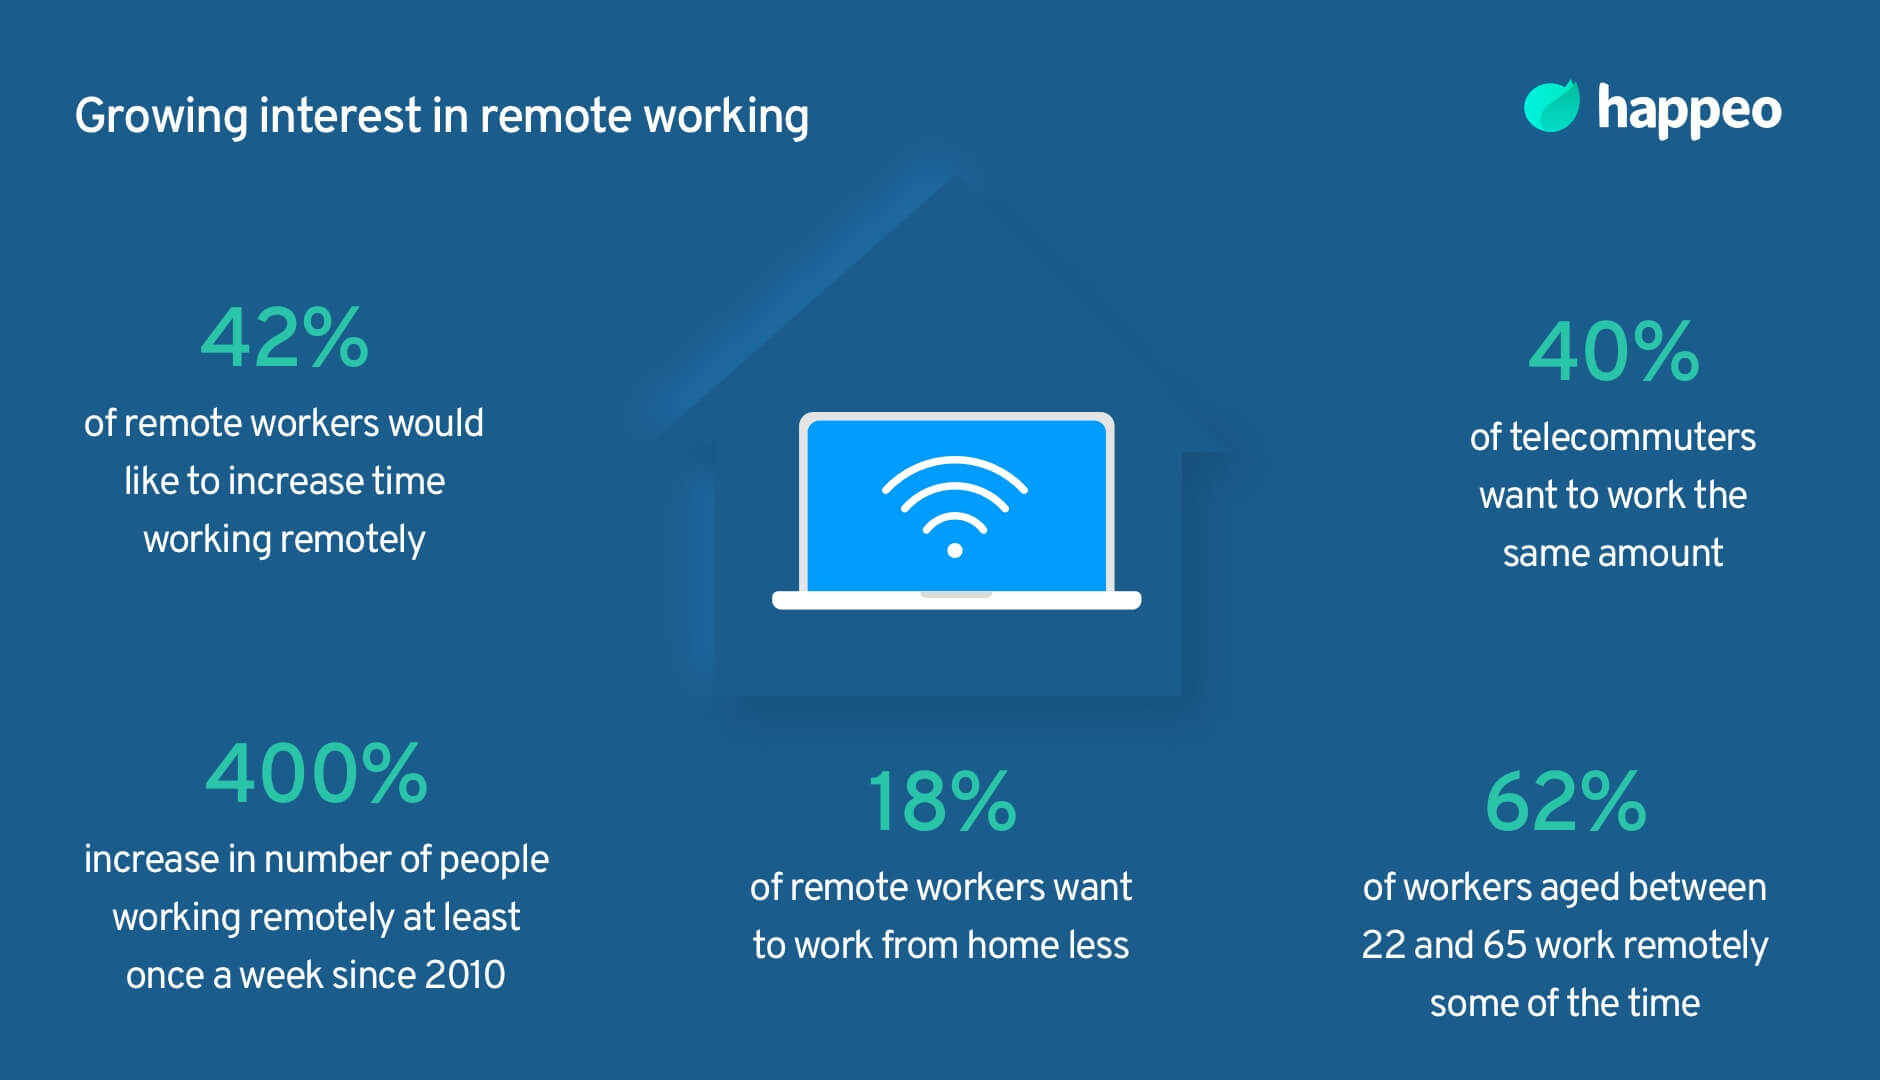 Growing interest in remote working